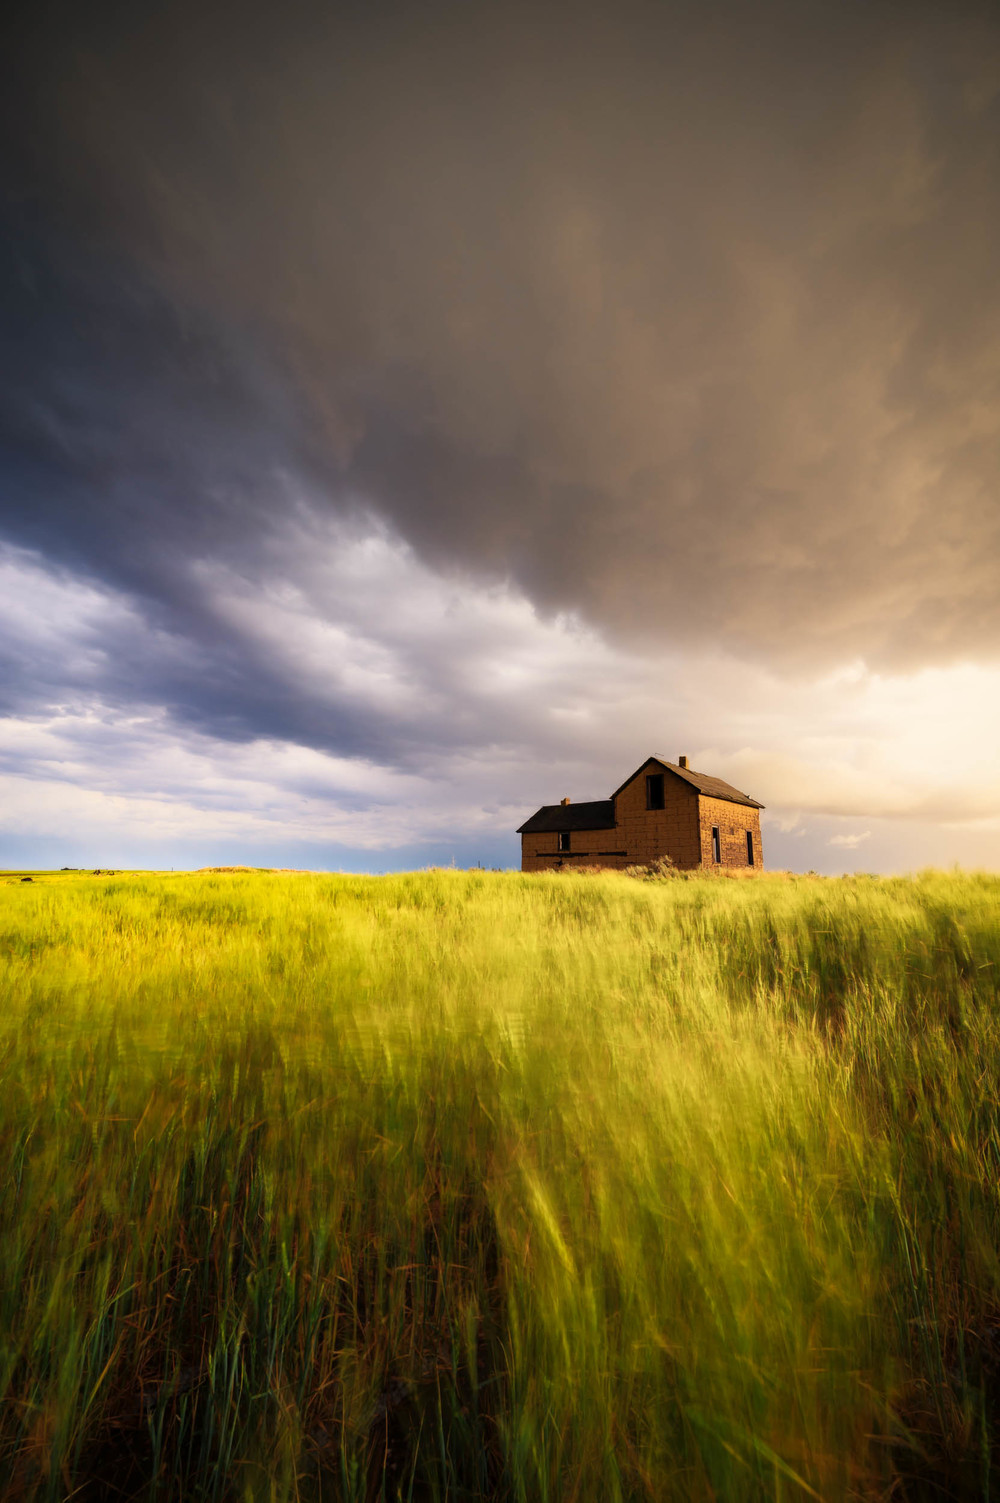 An abadoned farmhouse weathers a storm in rural Wyoming